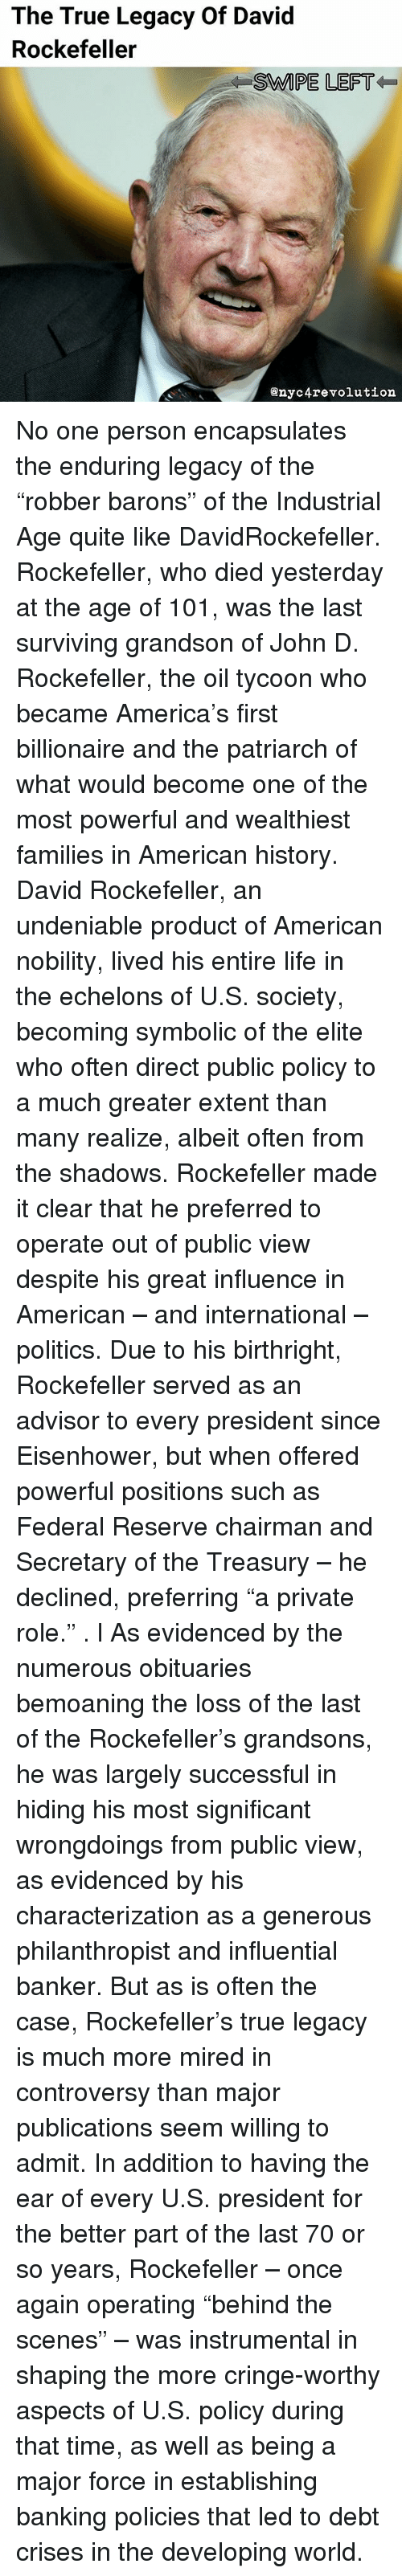 the life successes and influence of john davidson rockefeller Port manteaux churns out silly new words when you feed it an idea or two enter a word (or two) above and you'll get back a bunch of portmanteaux created by jamming together words that are conceptually related to your inputs.